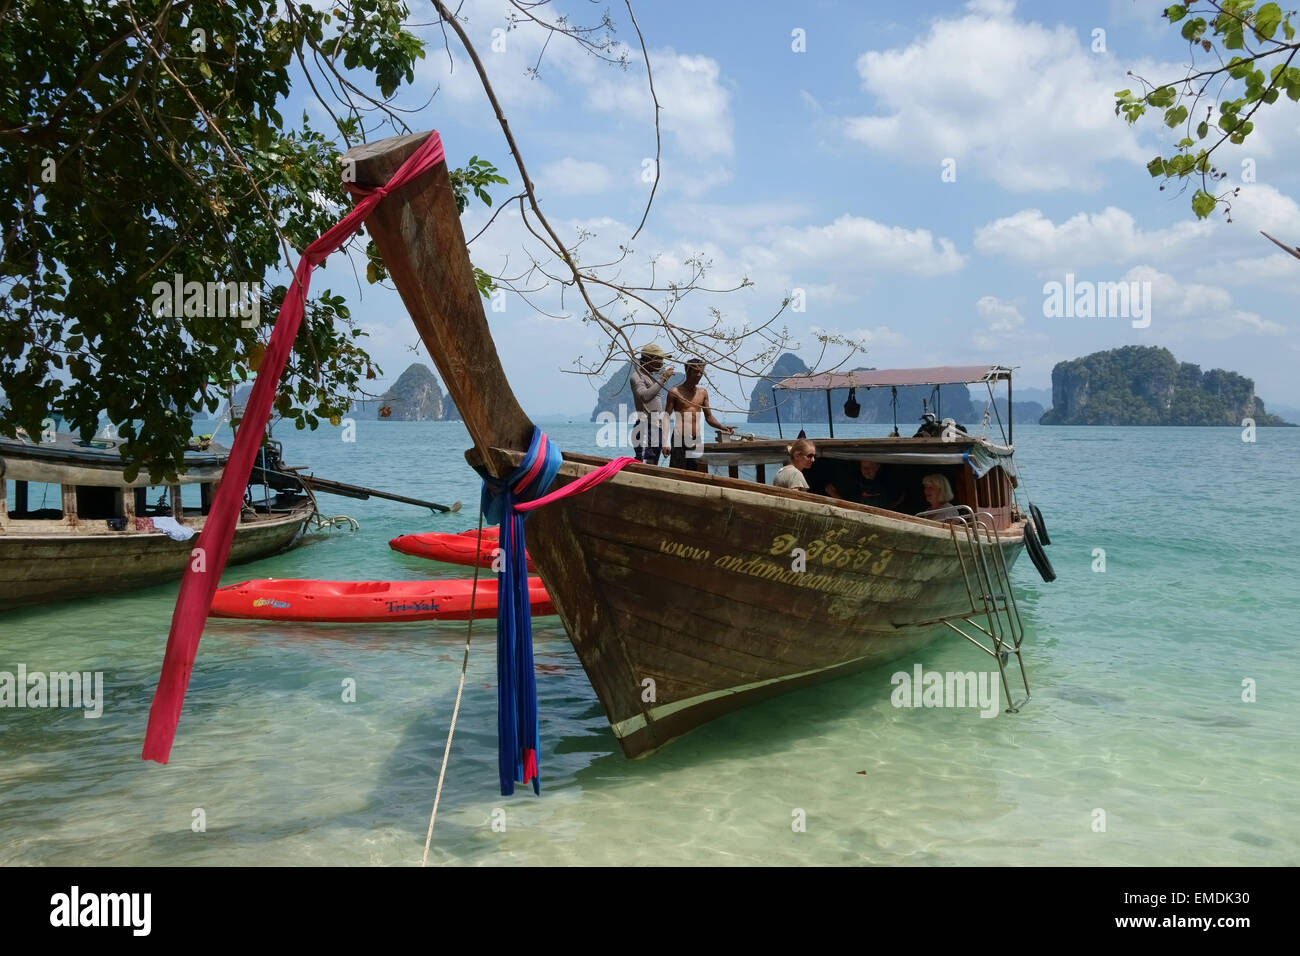 A tourist longtail boat moored with kayaks on a beach on Koh Hong in the Andaman Sea off Krabi Province in Thailand - Stock Image